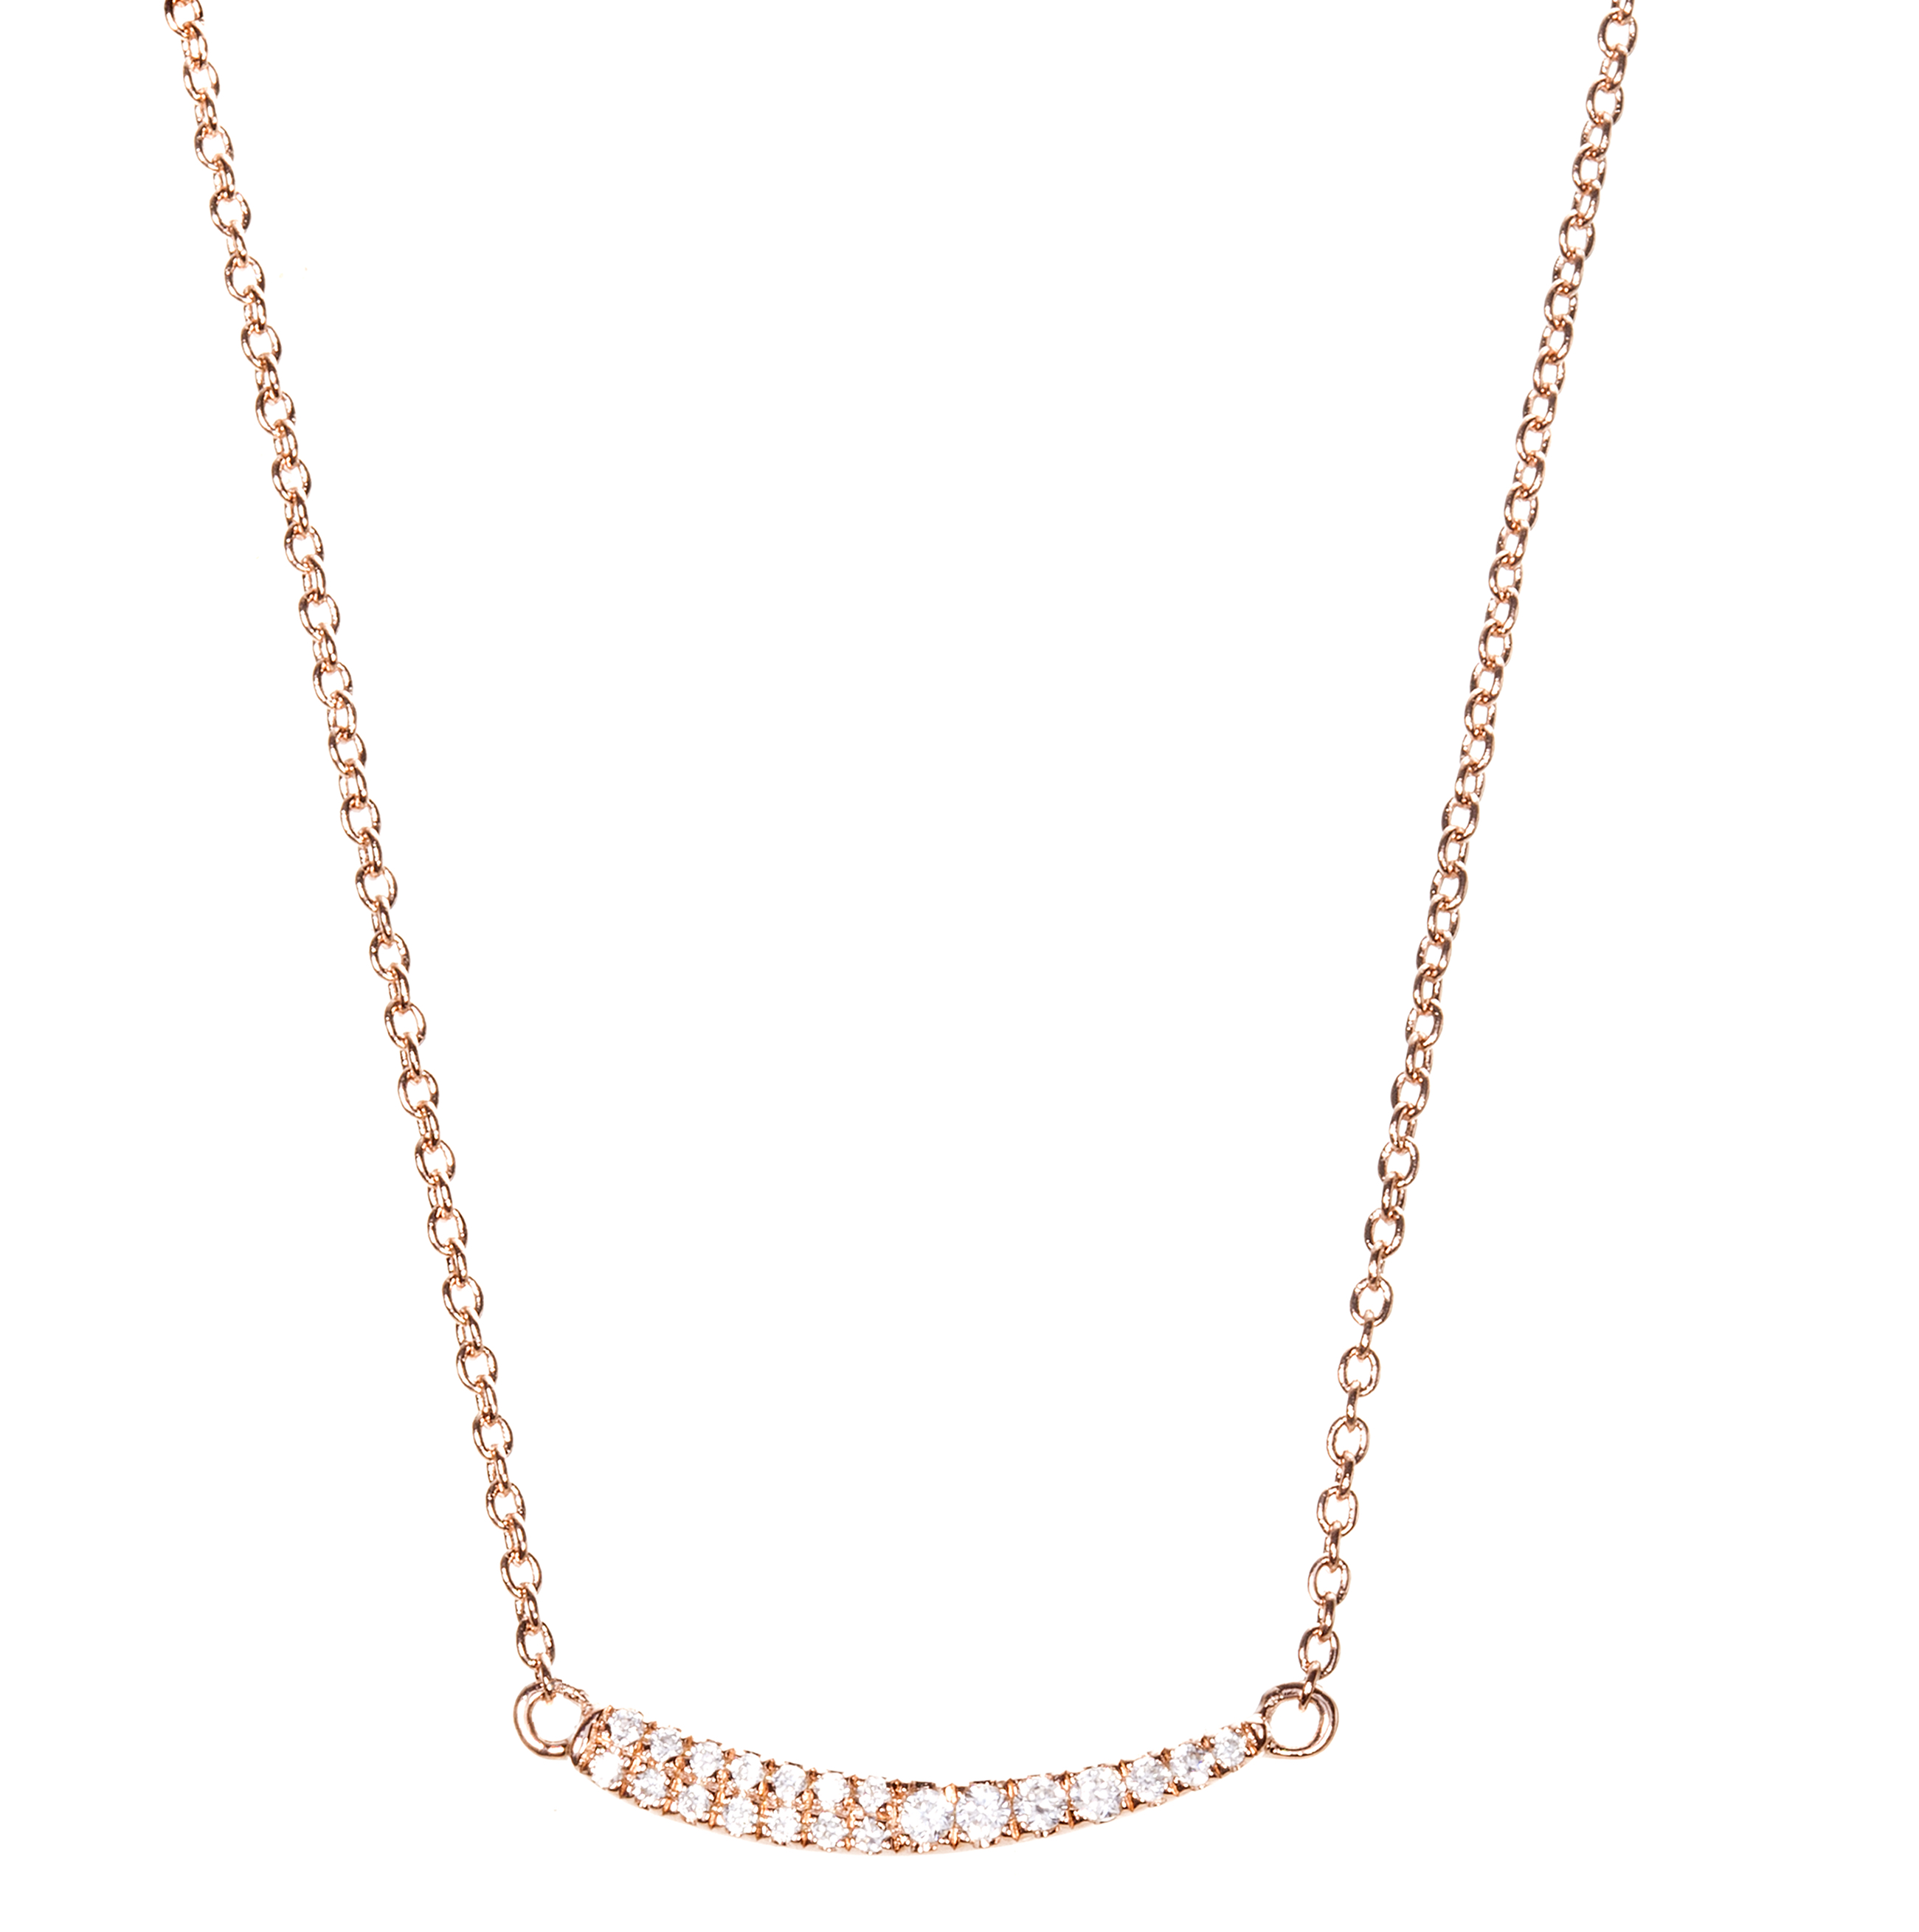 Graziela Gems curved necklace | JCK On Your Market